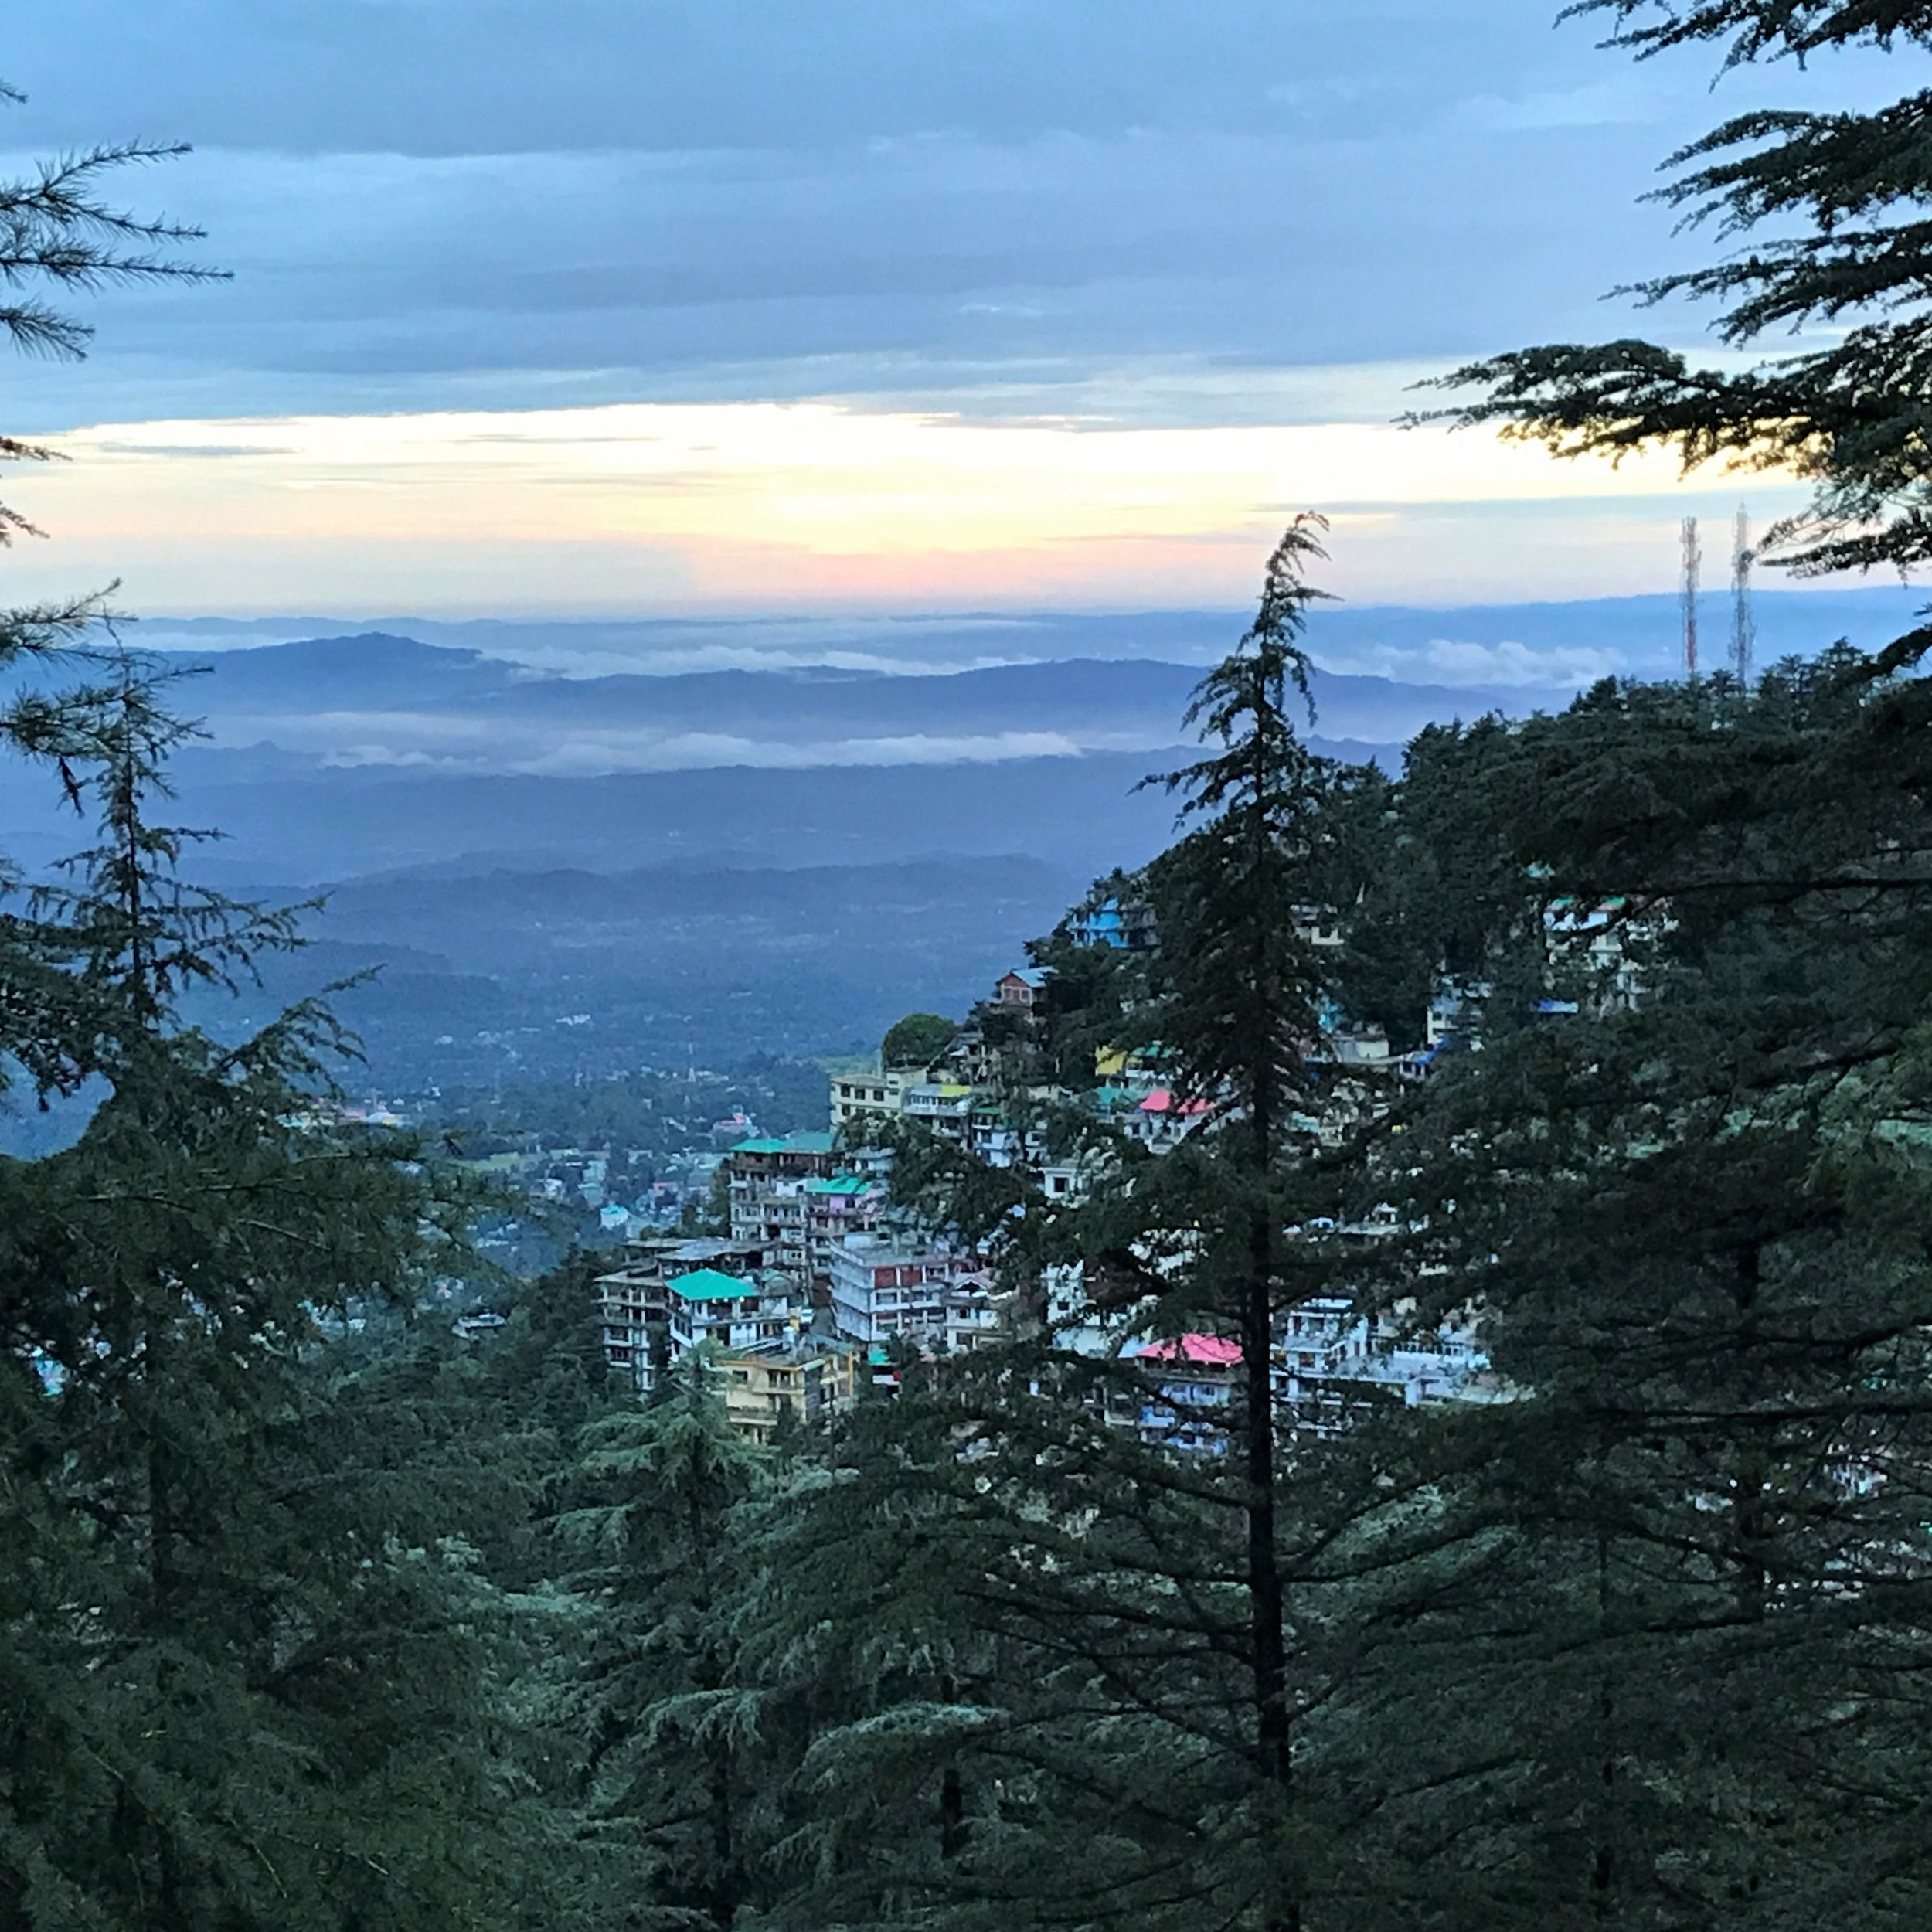 Mcleod Ganj as seen from the road up to Dharamkot